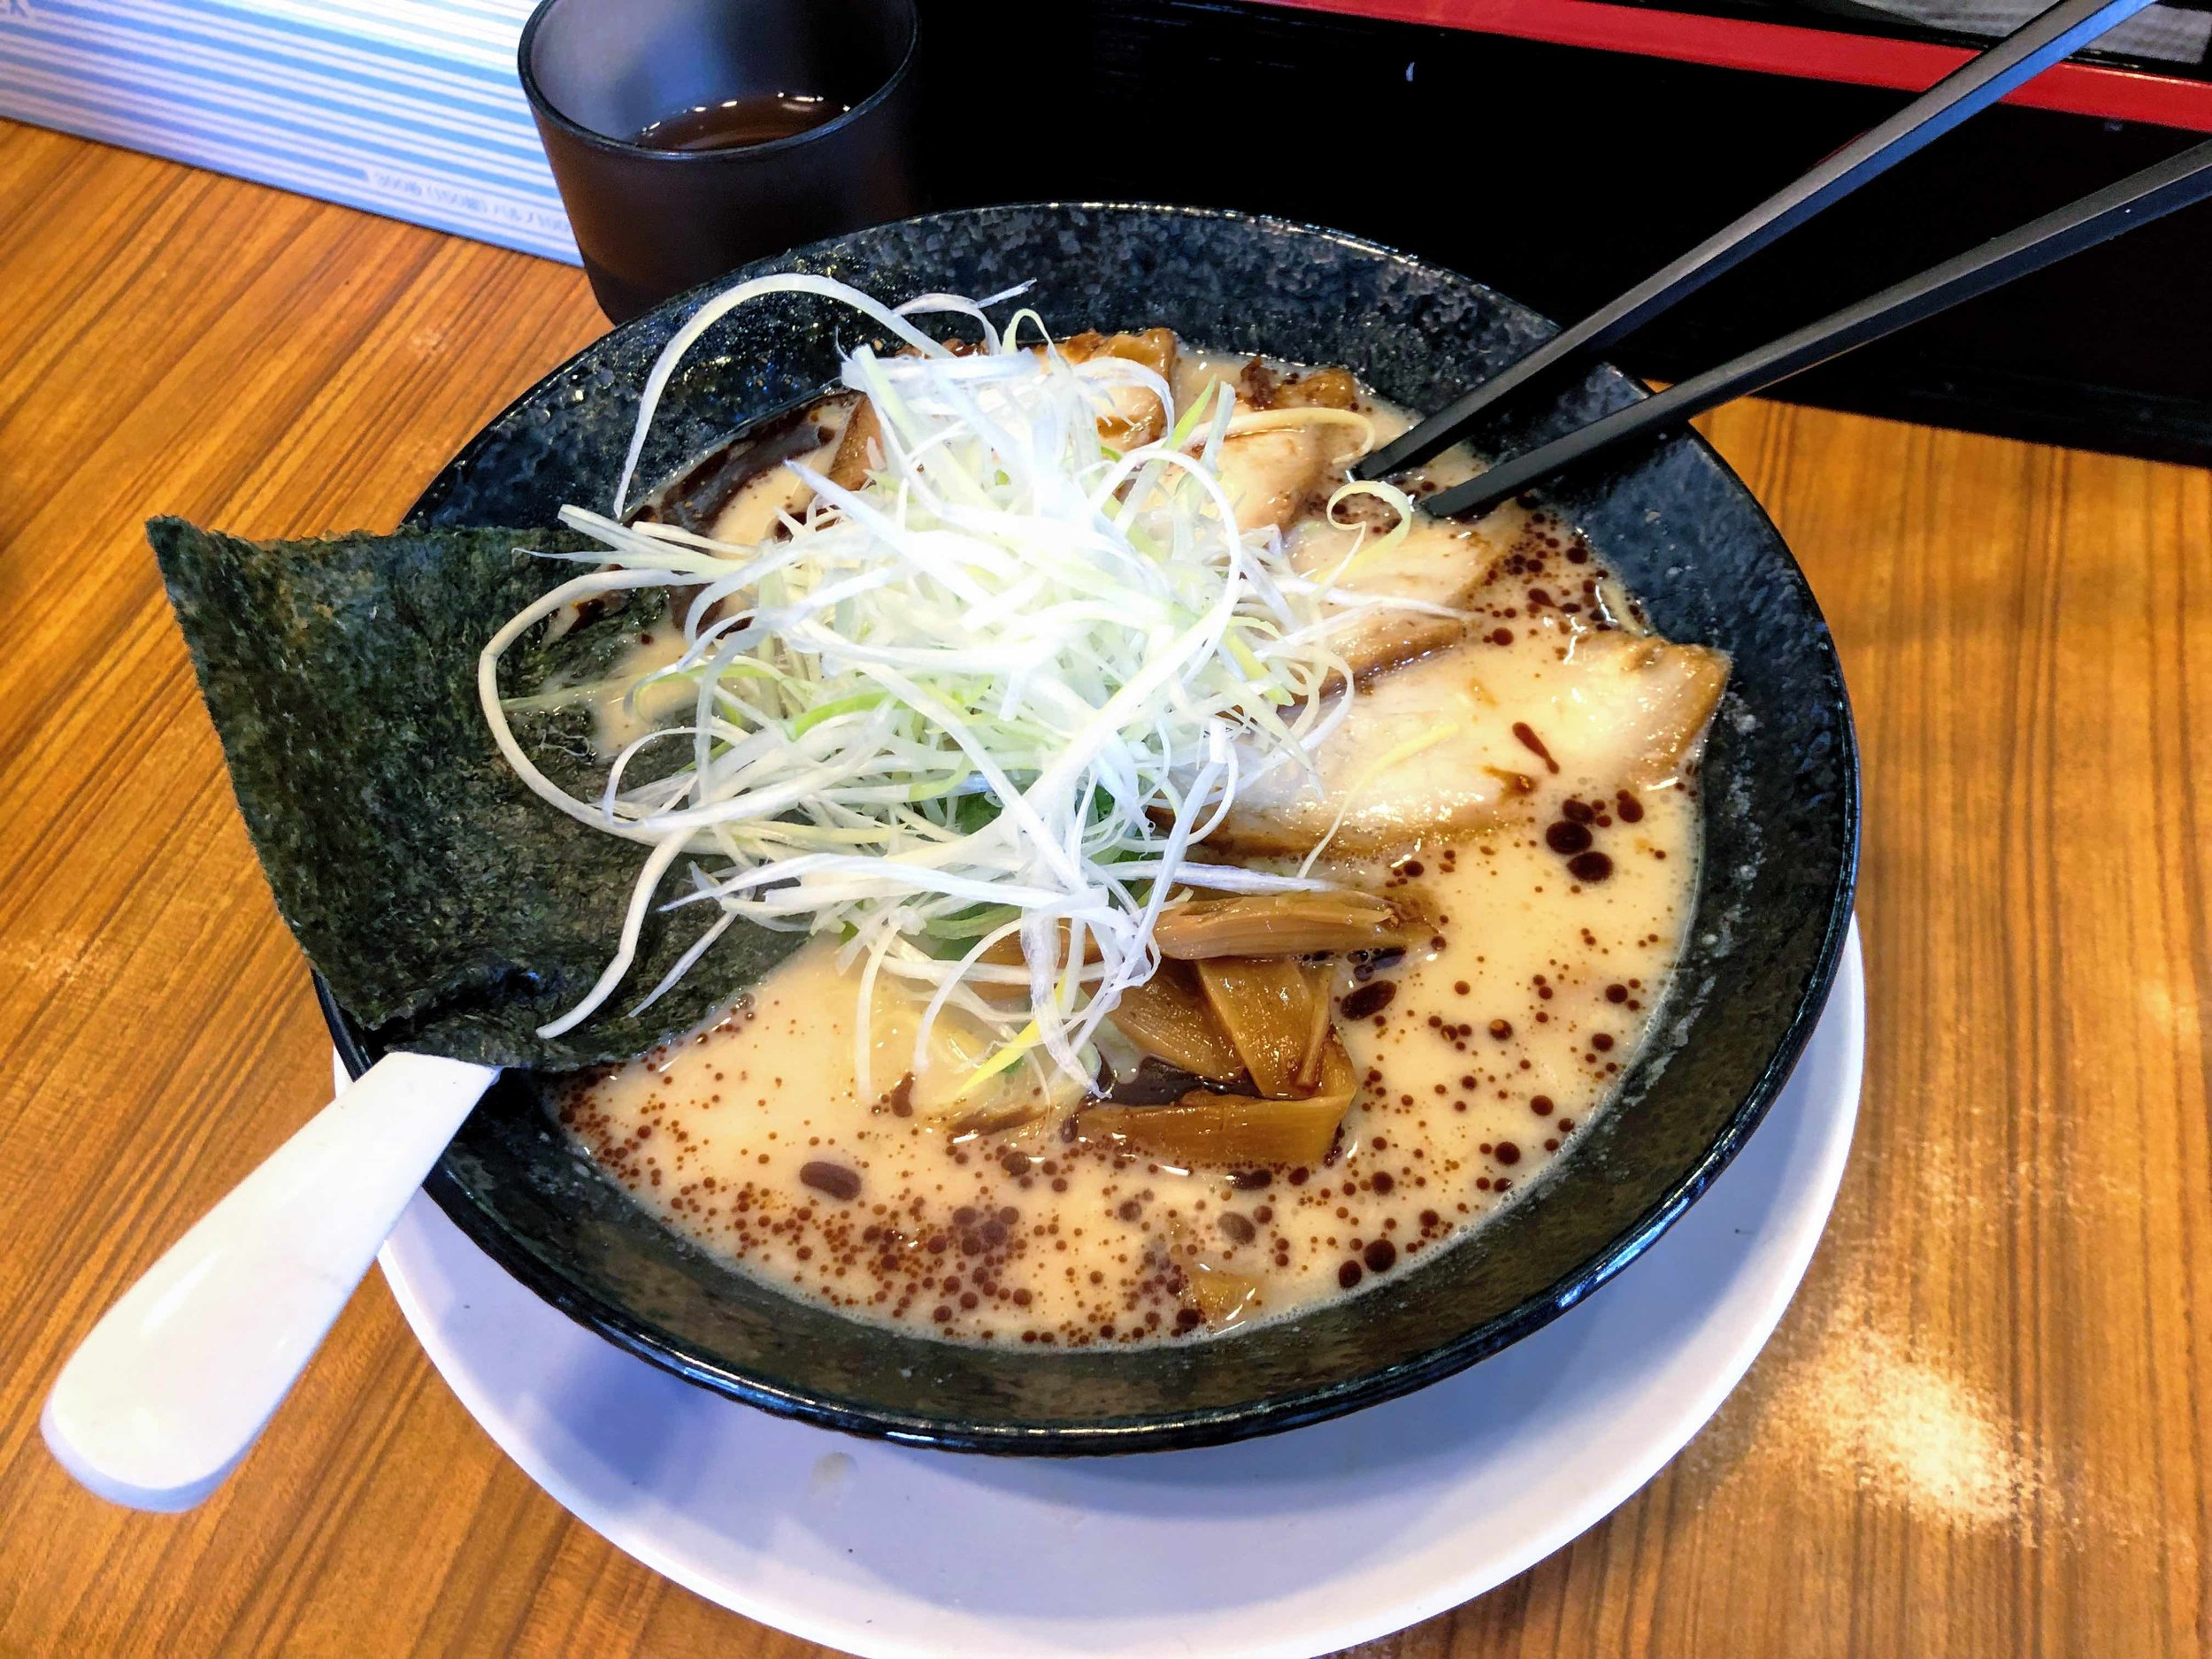 Love at first sight: I was head over heals in love with what I'd call the best ramen in Osaka